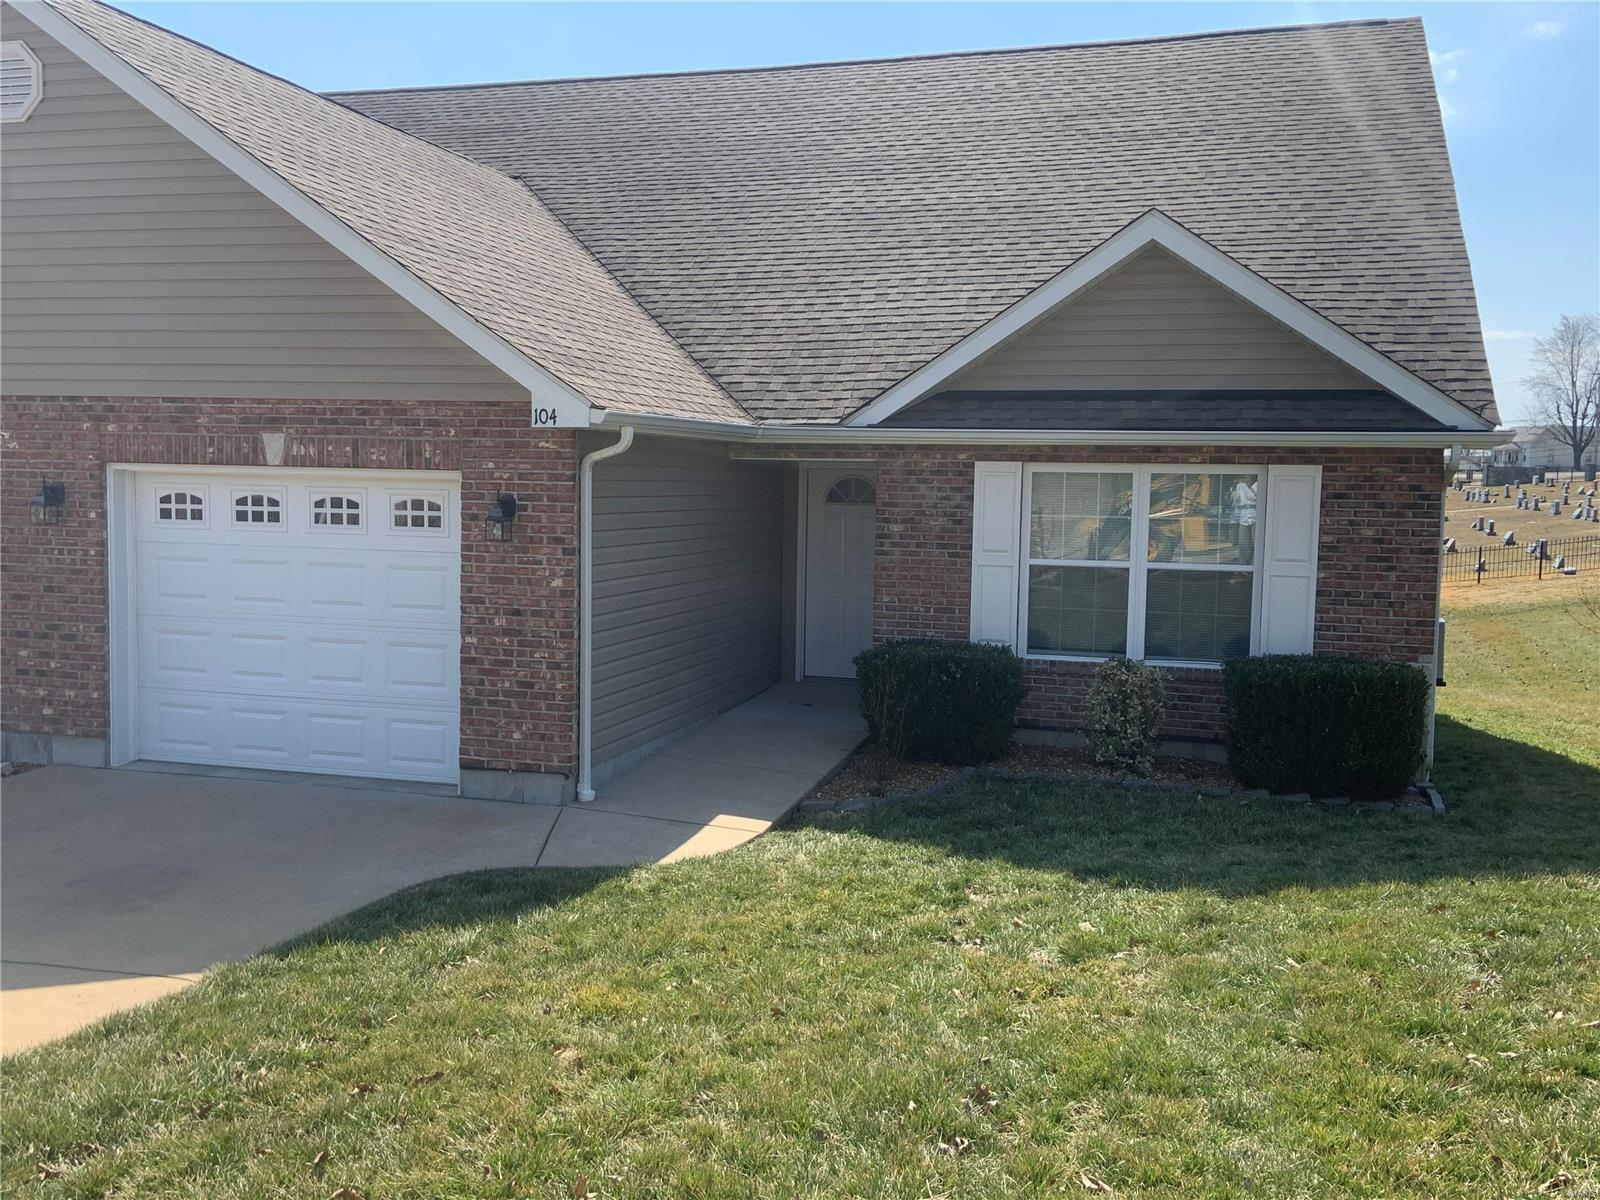 104 Glenrich Property Photo - Union, MO real estate listing